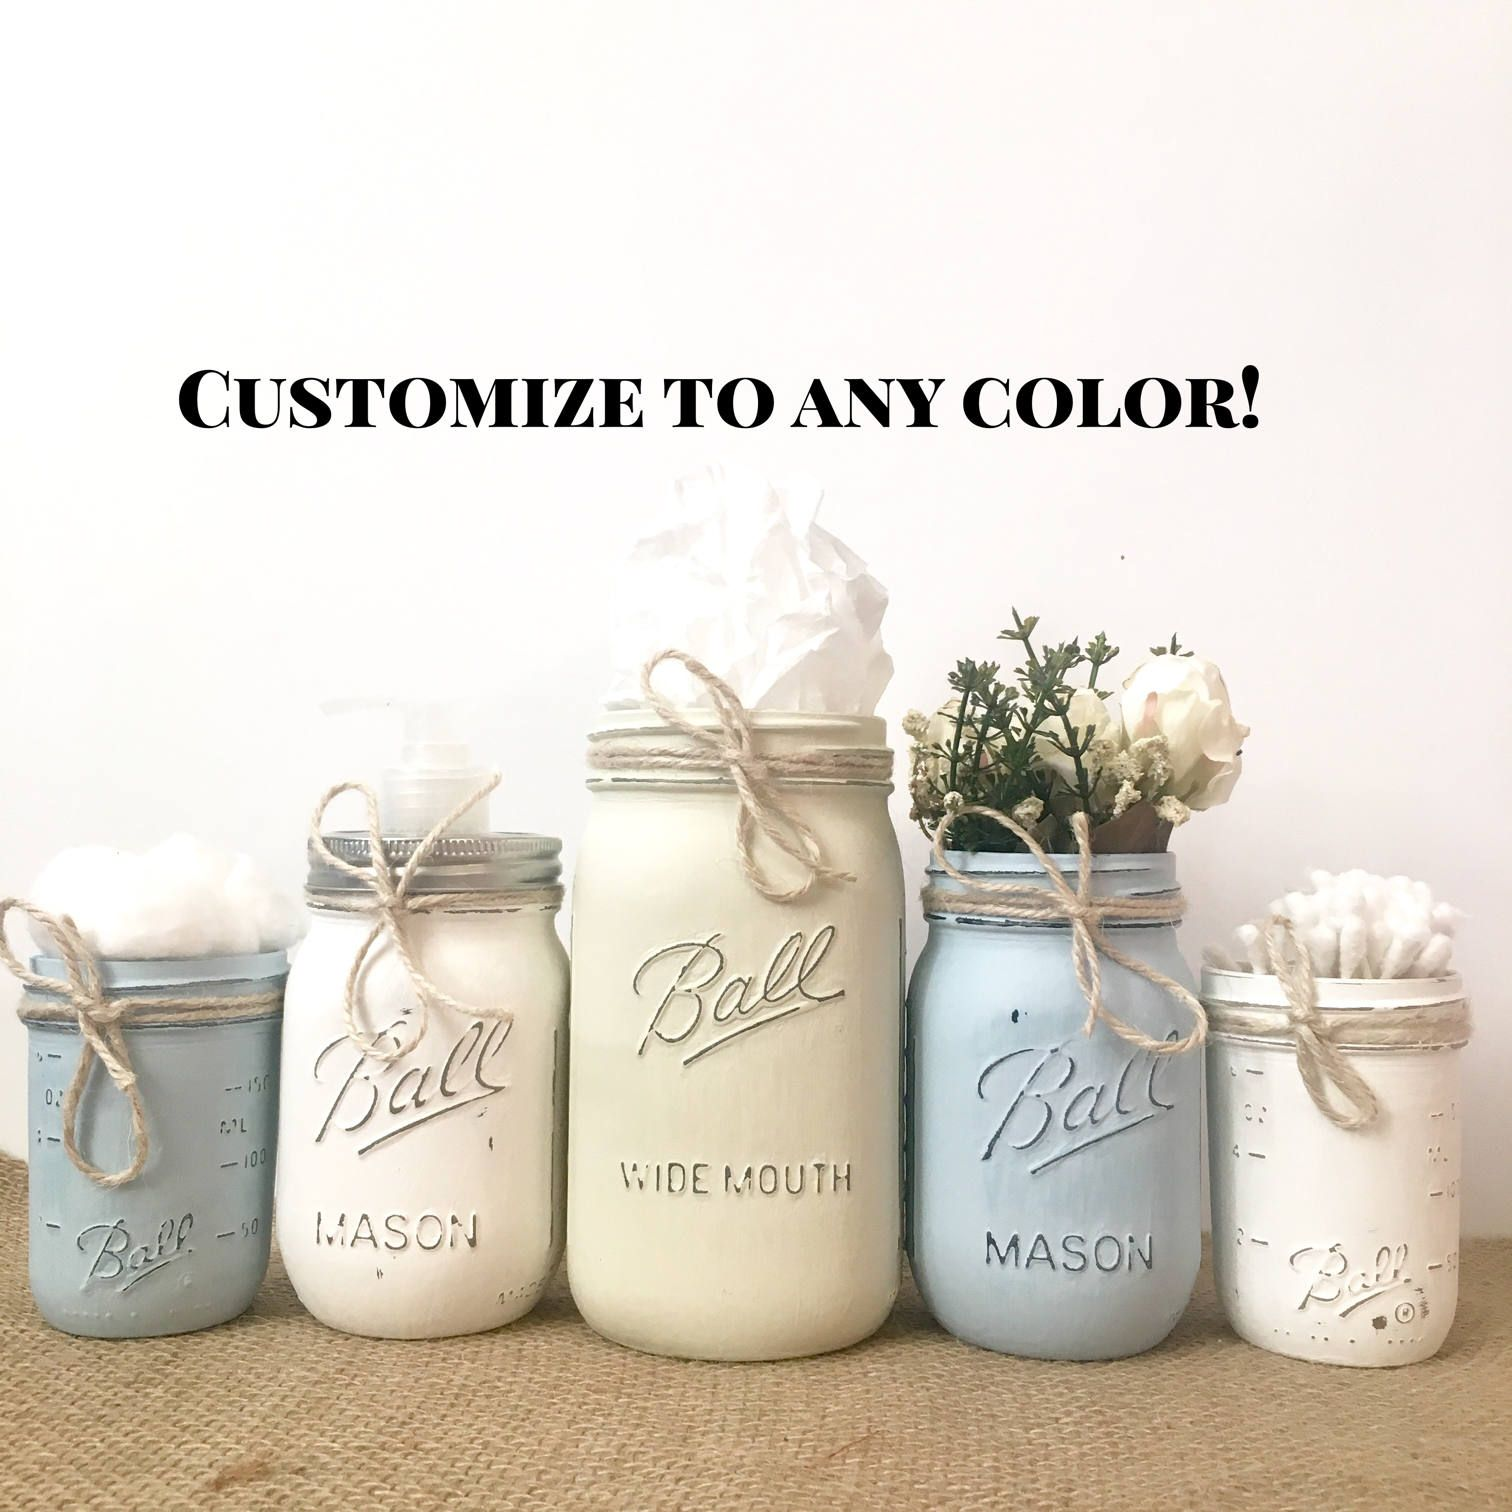 Farmhouse Decor Rustic Mason Jar Bathroom Set White Mason Jar Bathroom Storage Rustic Mason Jars Mason Jar Bathroom Storage Shabby Chic Bathroom Accessories